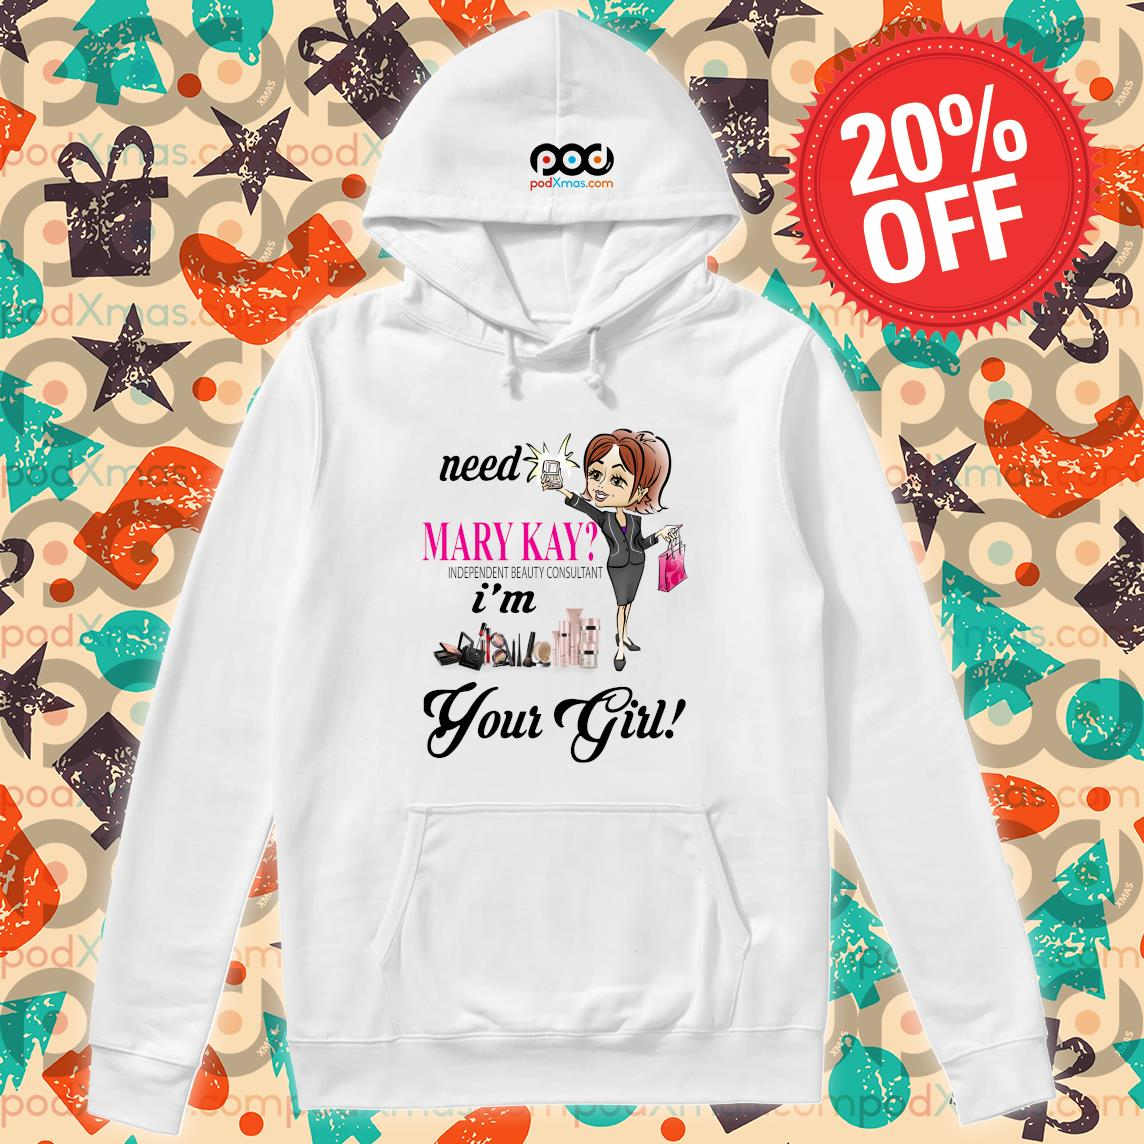 Need Mary Kay independent beauty consultant i'm your girl s Hoodie PODxmas trang